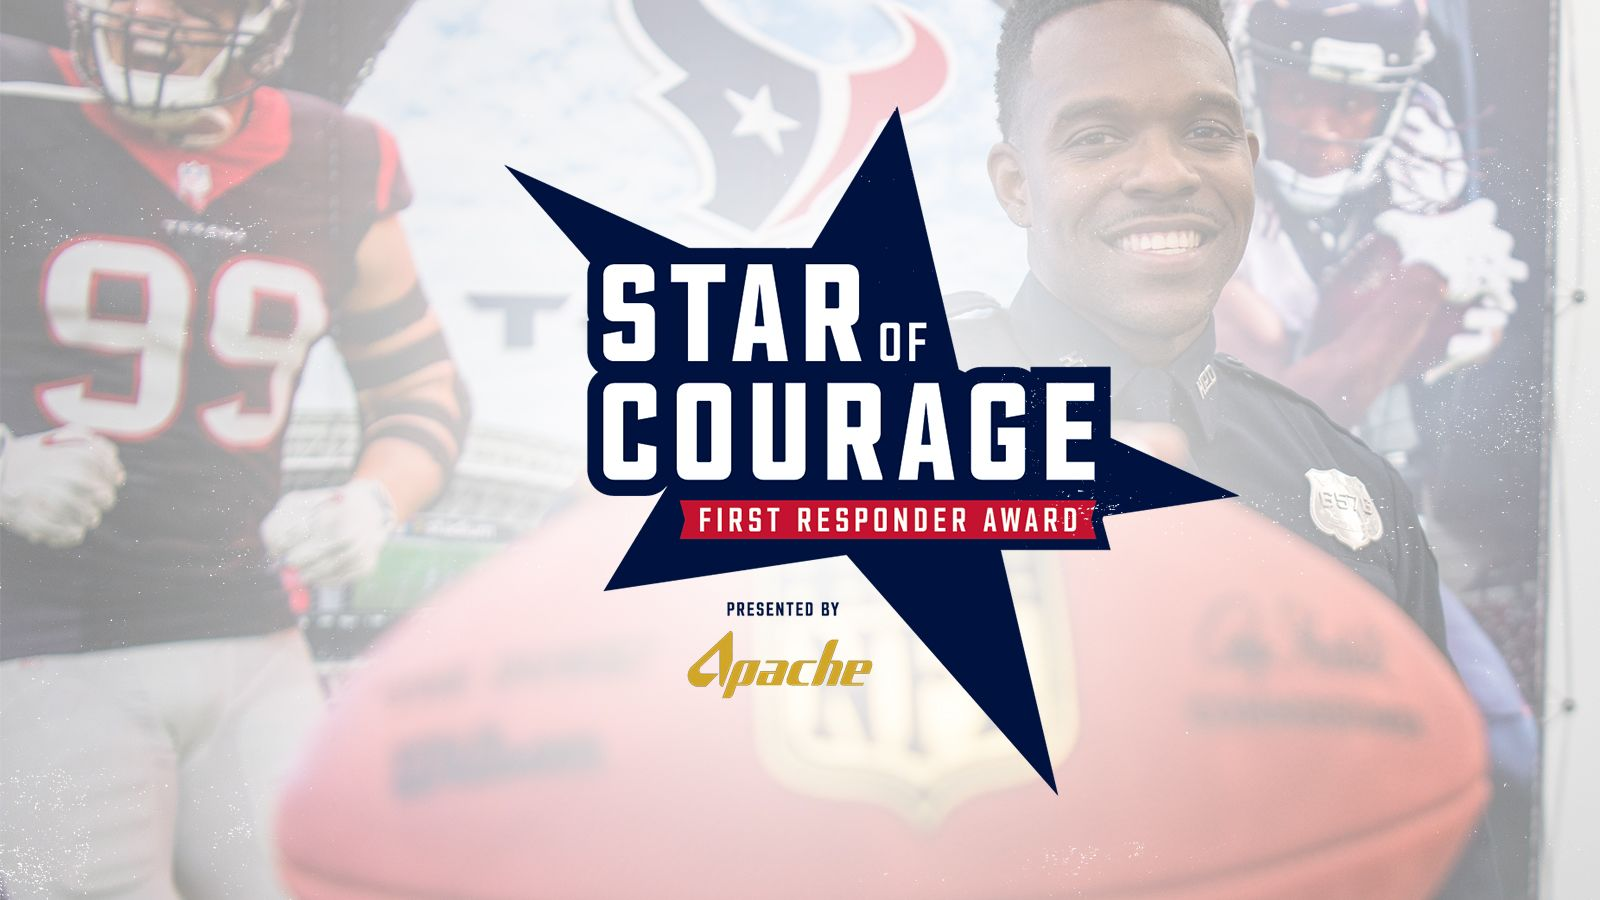 Star of Courage. Presented by Apache